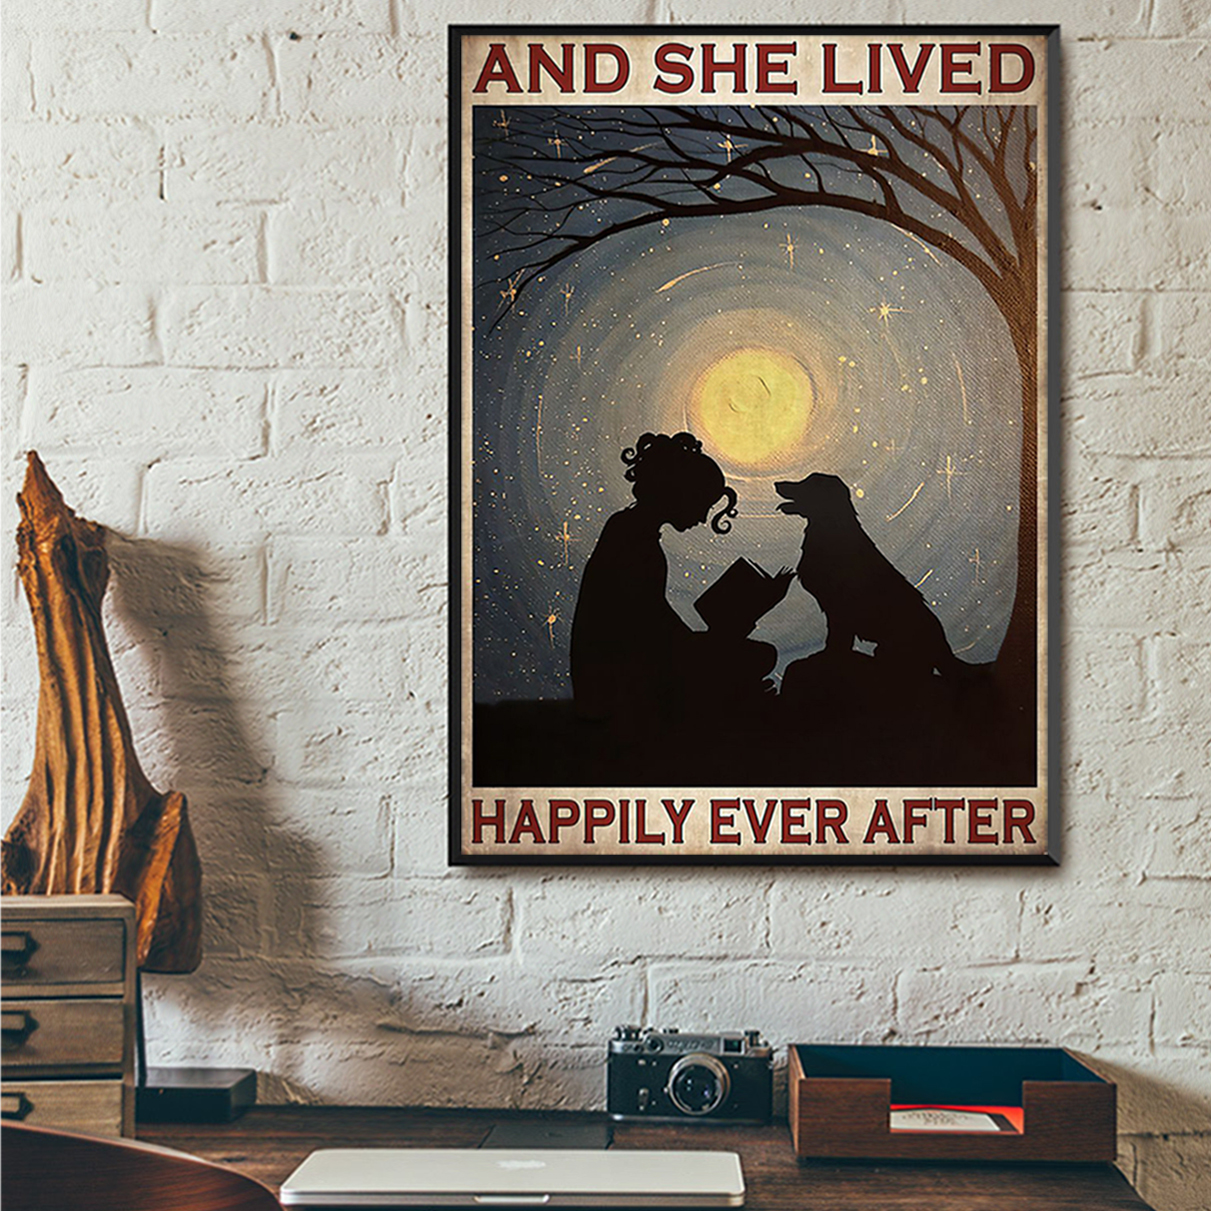 Girl reading with dog and she lived happily ever after poster A2